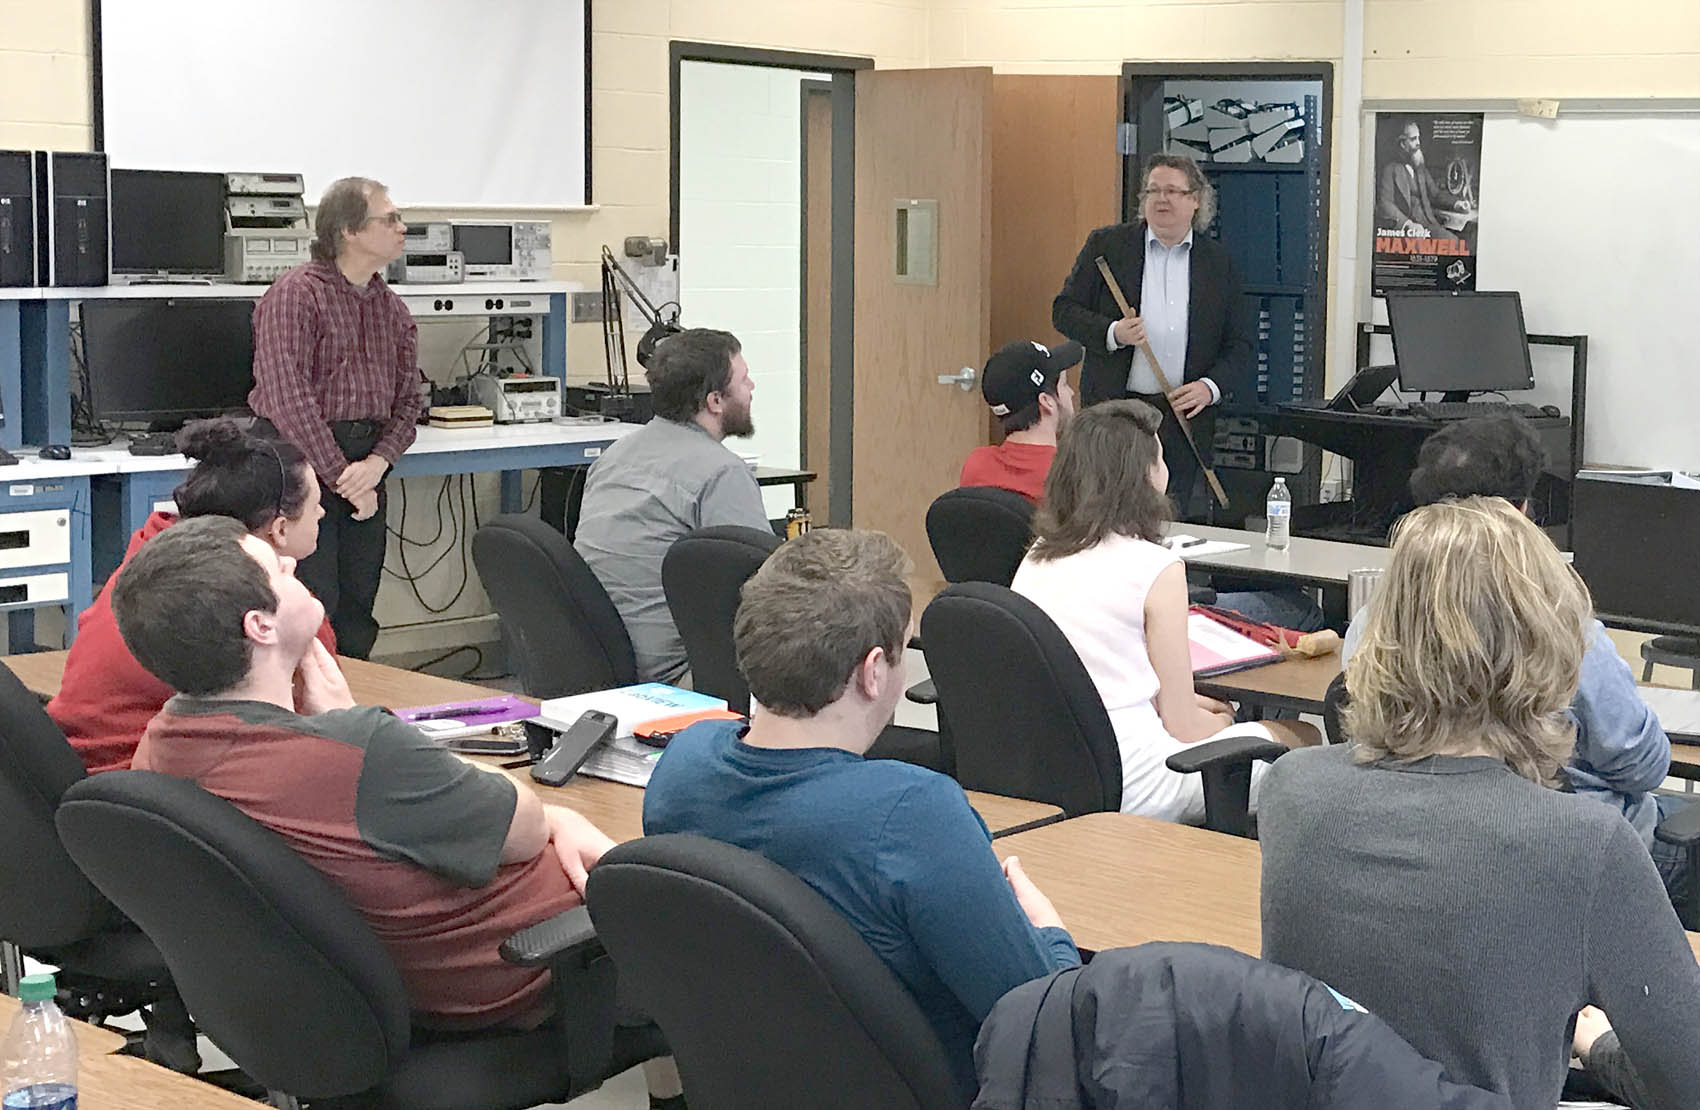 Click to enlarge,  Dr. Jyrki Saarinen, Professor at the University of Eastern Finland and Head of Institute of Photonics, recently visited the Laser and Photonics program at Central Carolina Community College.